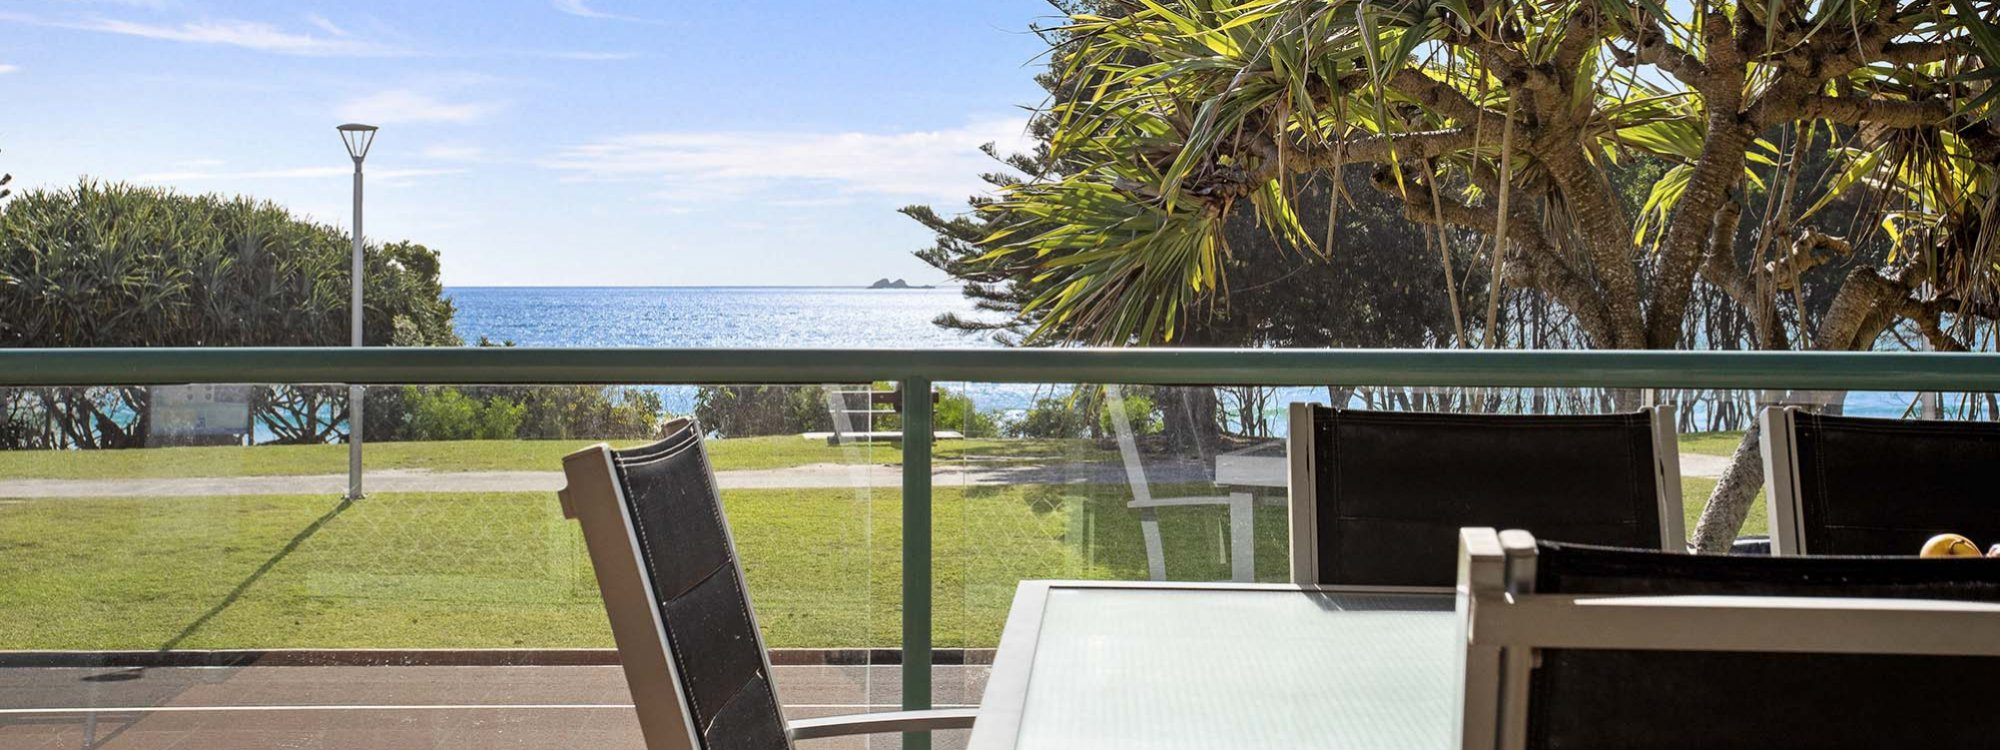 Apartment 3 Surfside - Byron Bay - Veranda Dining and View